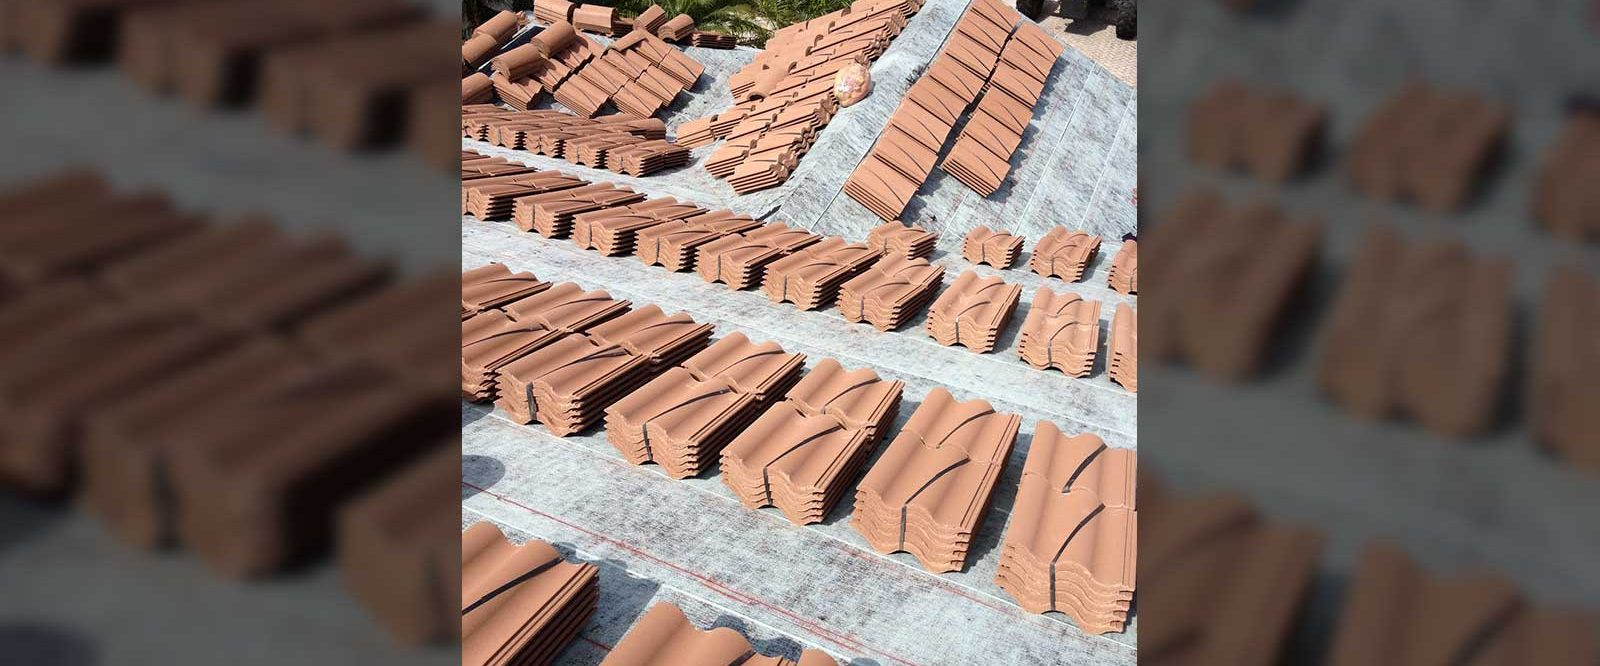 ultimate underlayment solution for roofers